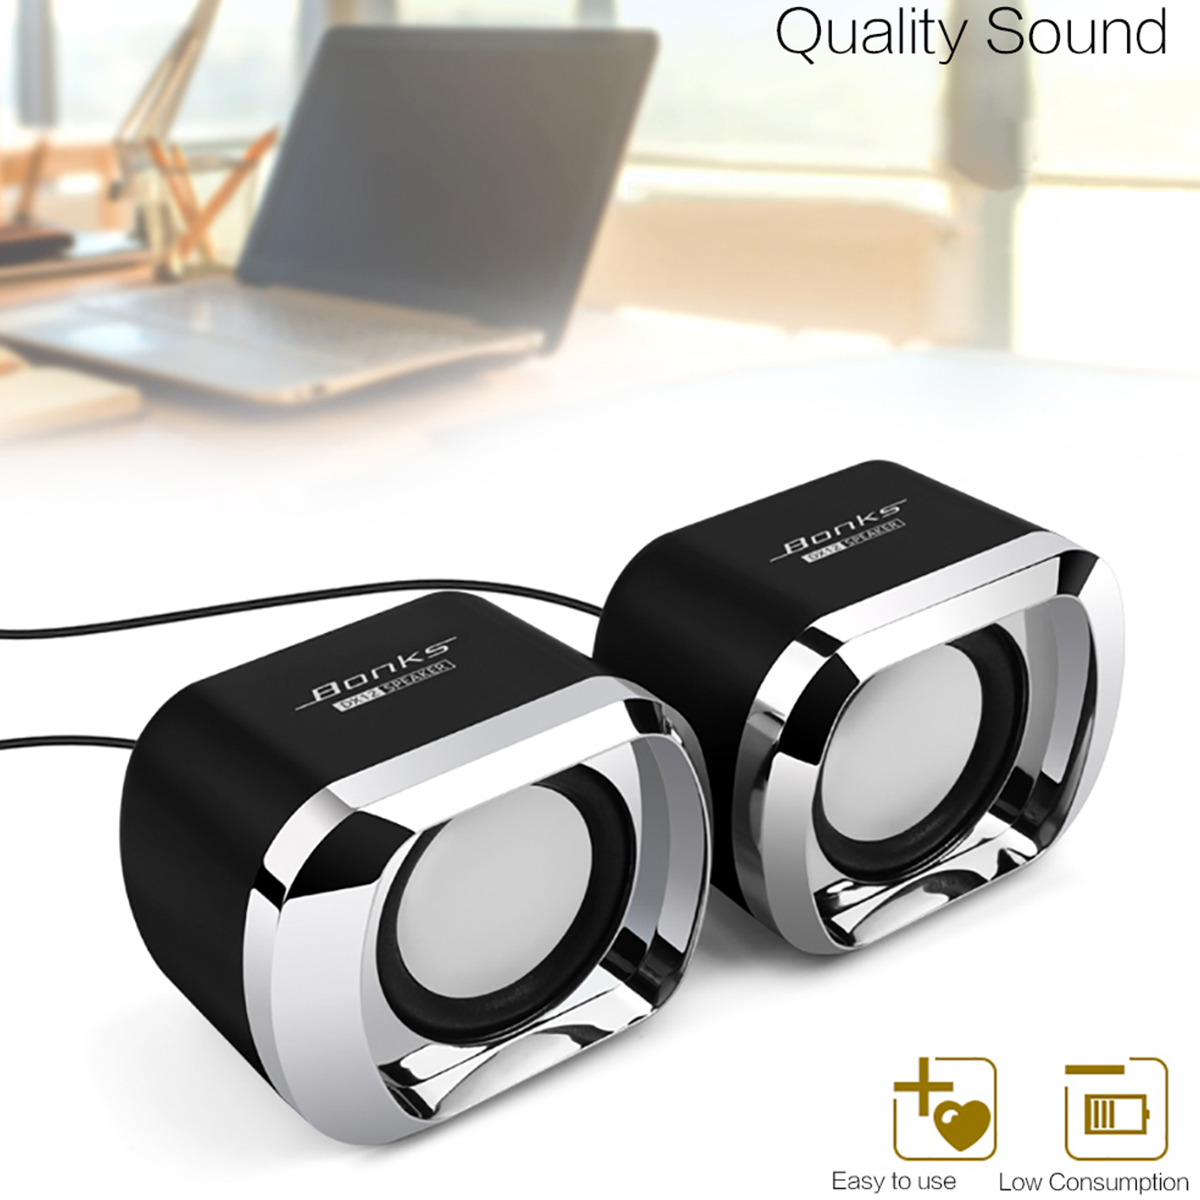 3.5mm speaker Bonks DX12 mini PC speaker 3.5mm stereo audio input interface 6W Full frequency  speakers computer portable(China)